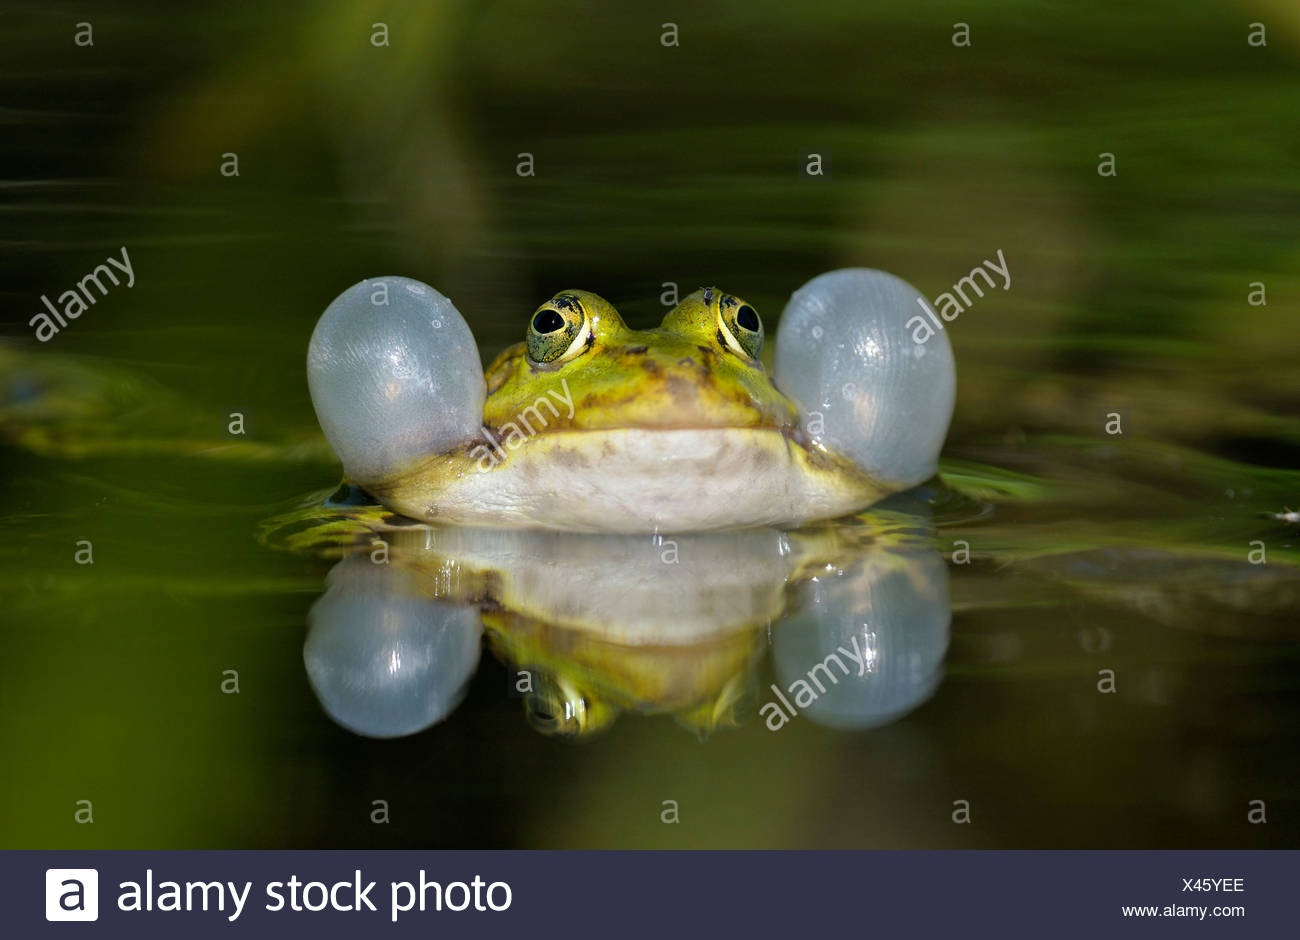 European edible frog, common edible frog (Rana kl. esculenta, Rana esculenta), male croaking with vocal sacs during the spawning season, Germany, North Rhine-Westphalia - Stock Image